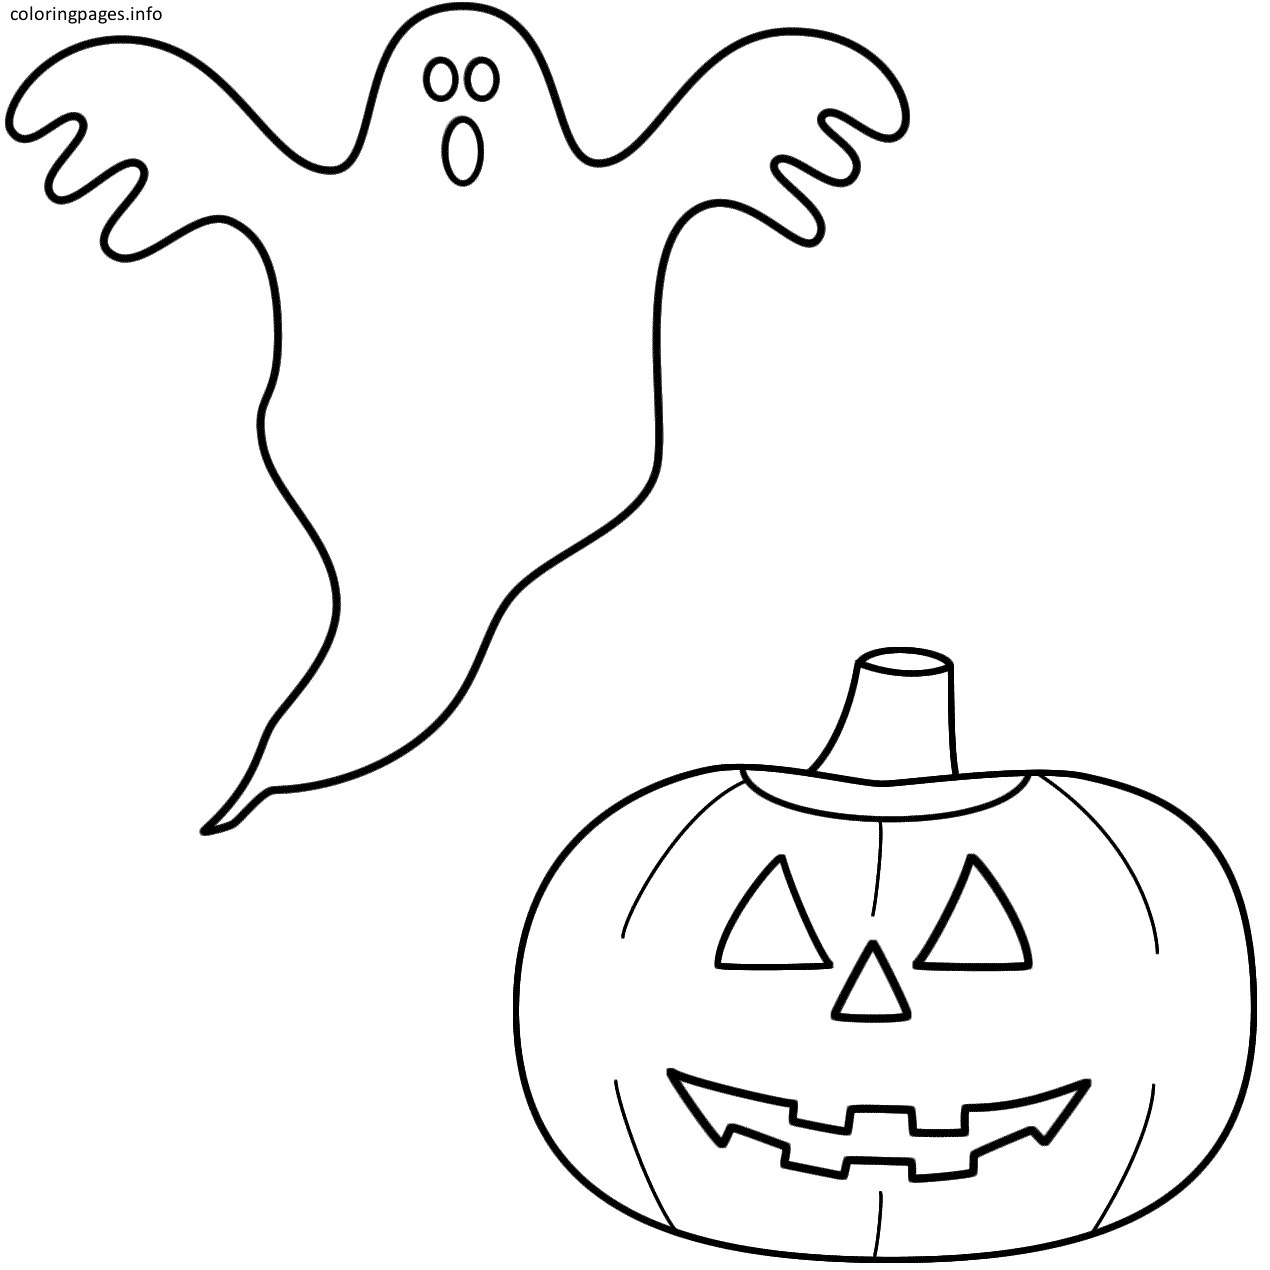 Pumpkin And Ghost Coloring Pages Pumpkin Coloring Pages Coloring Pages Cartoon Coloring Pages